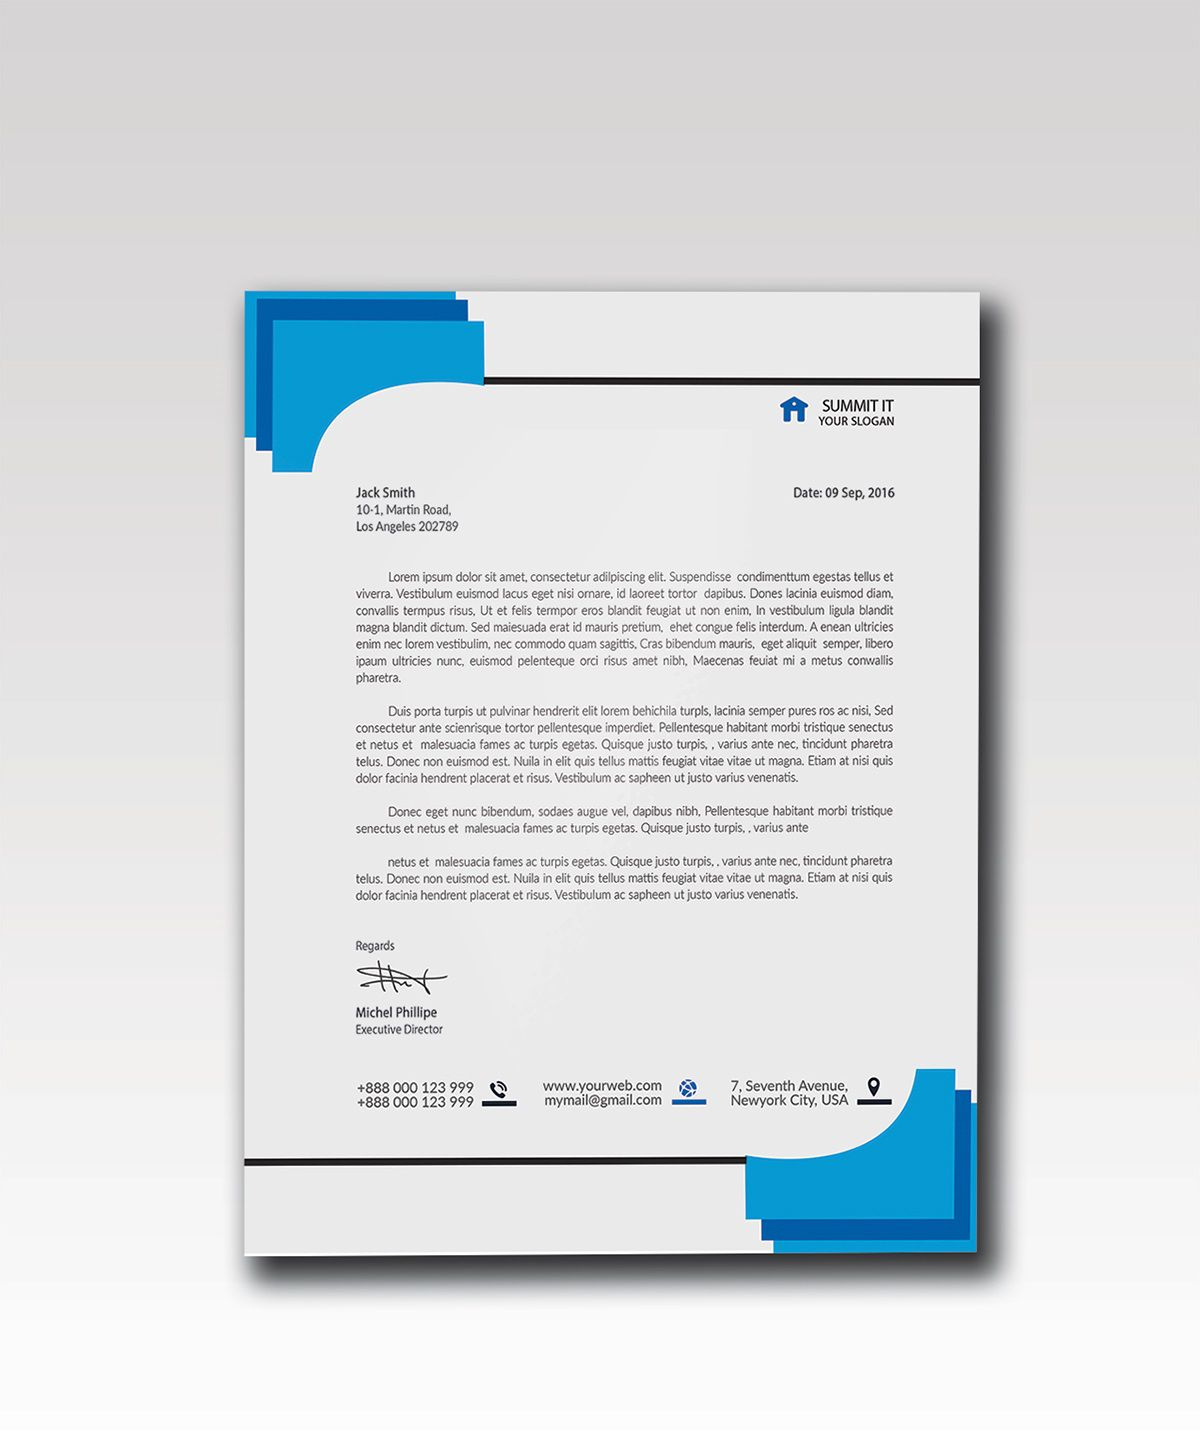 003 Impressive Letterhead Template Free Download Psd Sample  A4 CompanyFull